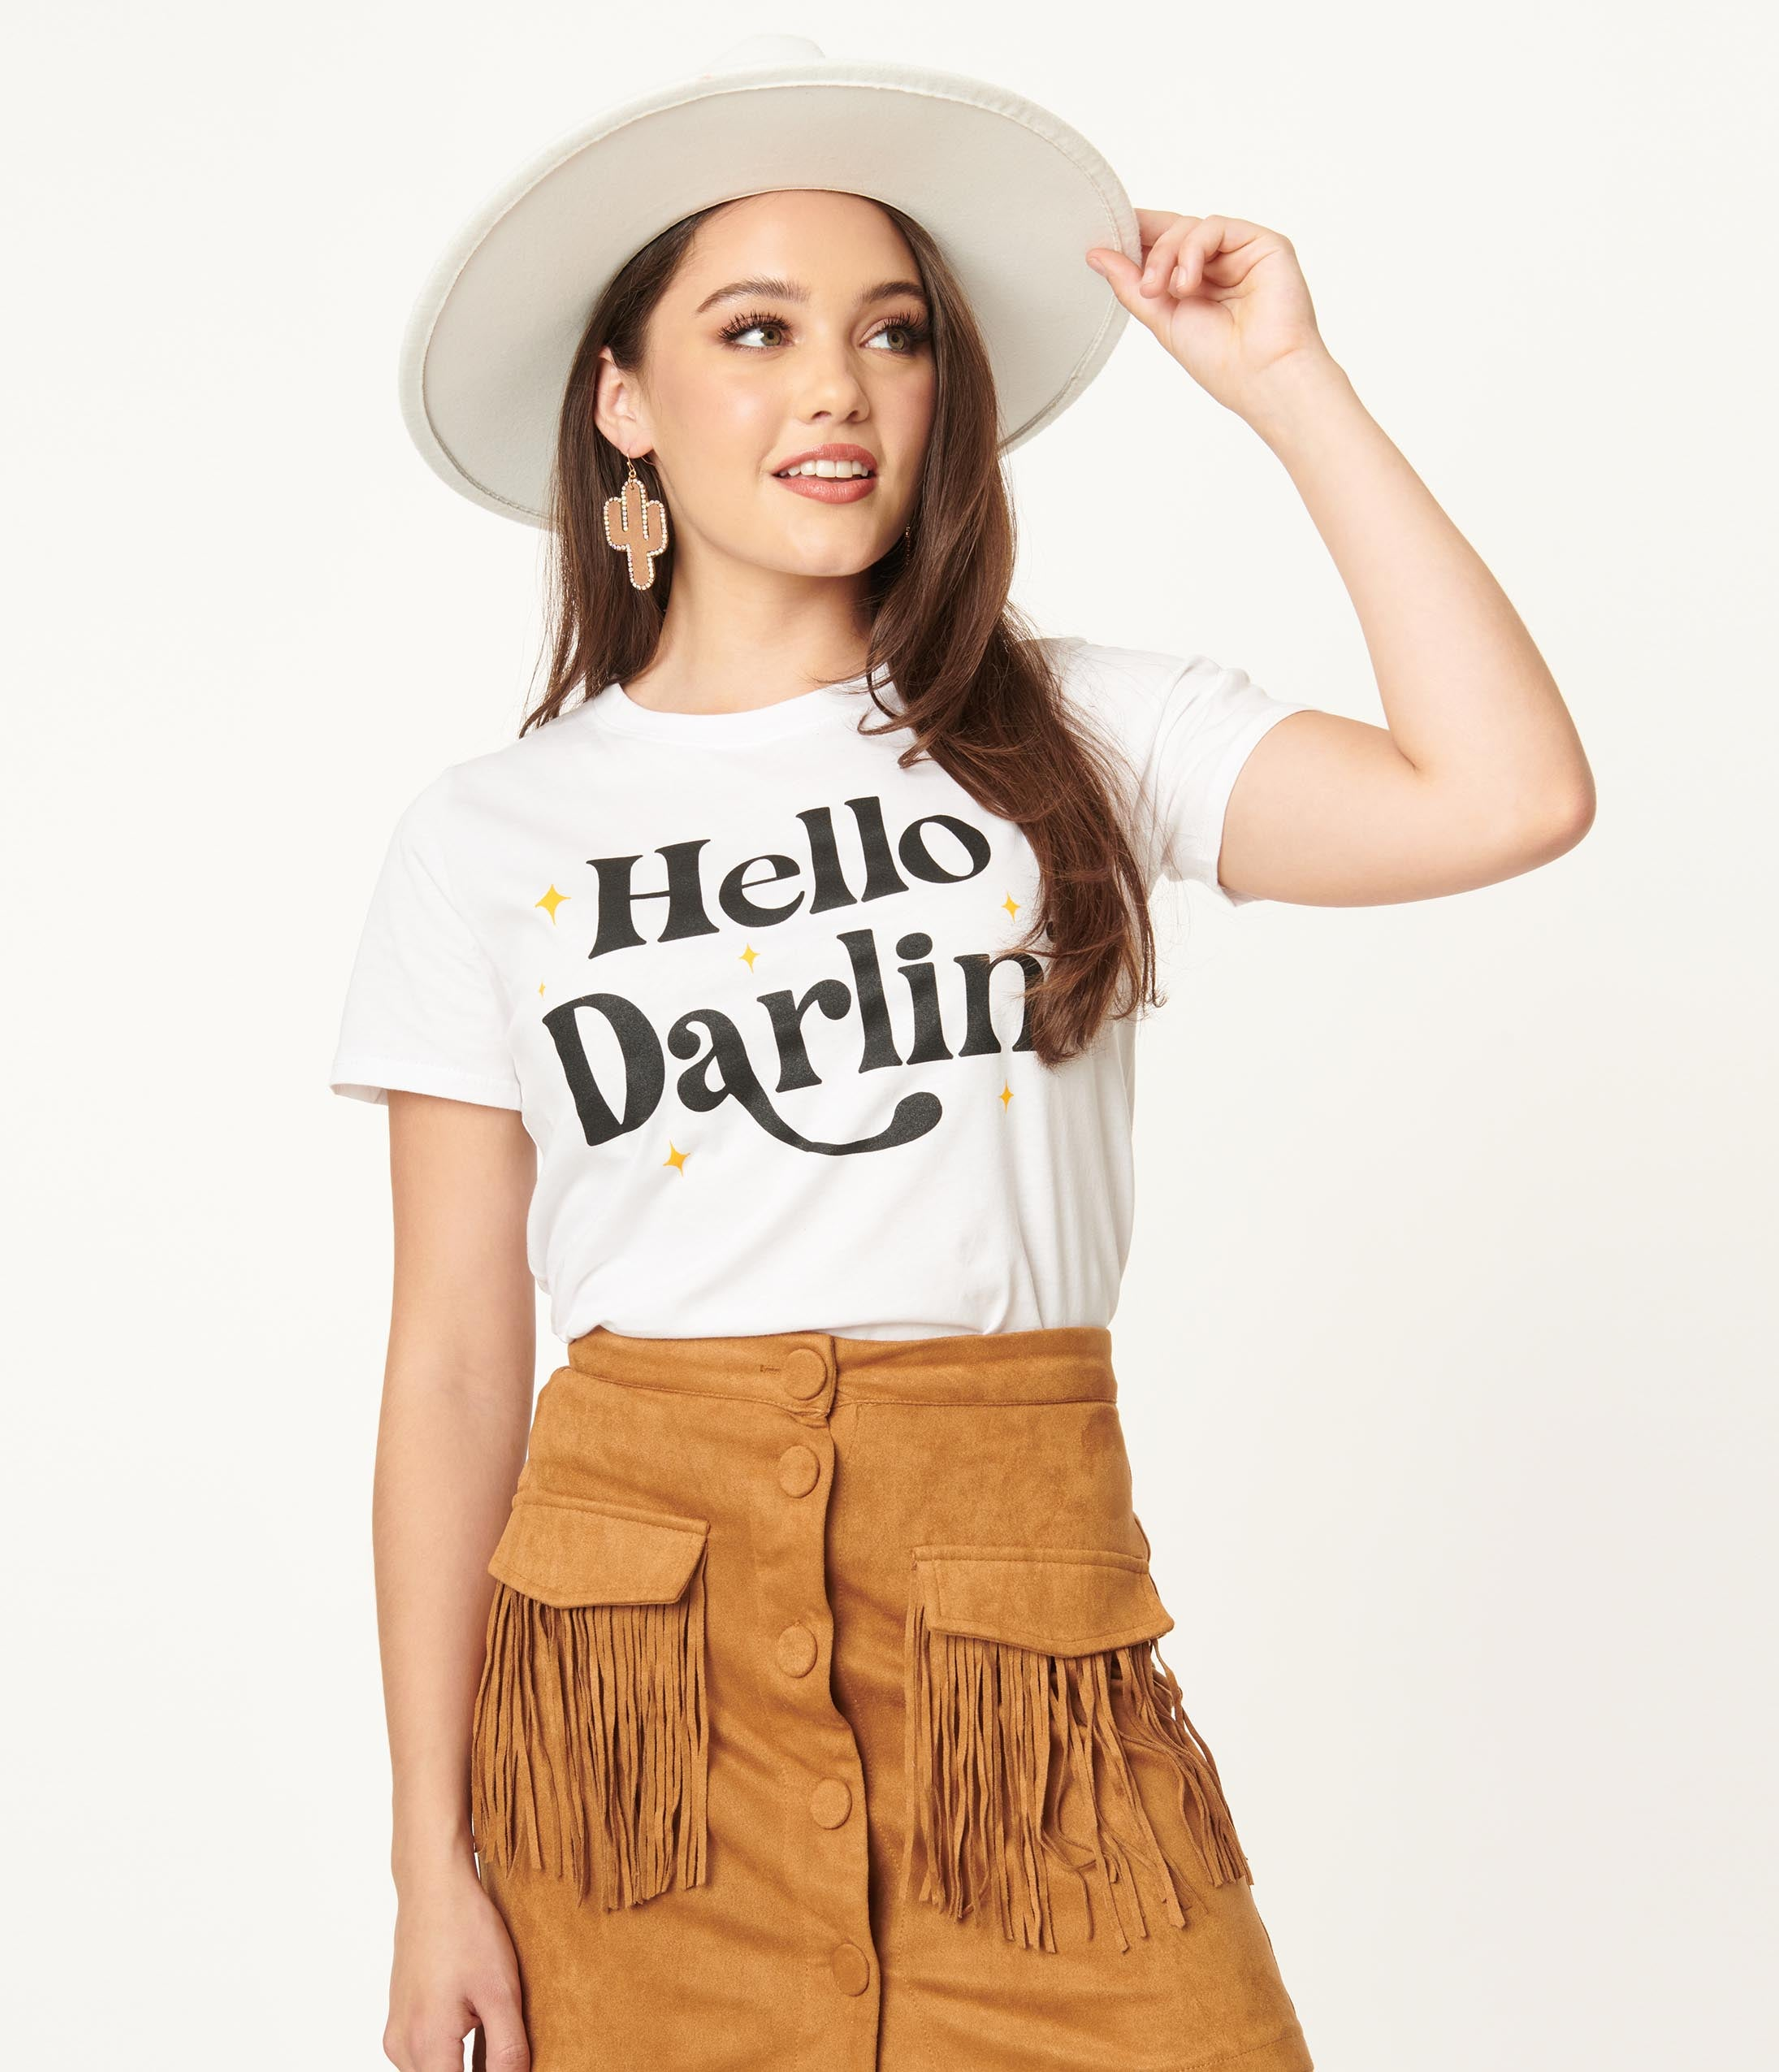 Vintage Western Wear Clothing, Outfit Ideas Hello Darling Unisex Graphic Tee $36.00 AT vintagedancer.com